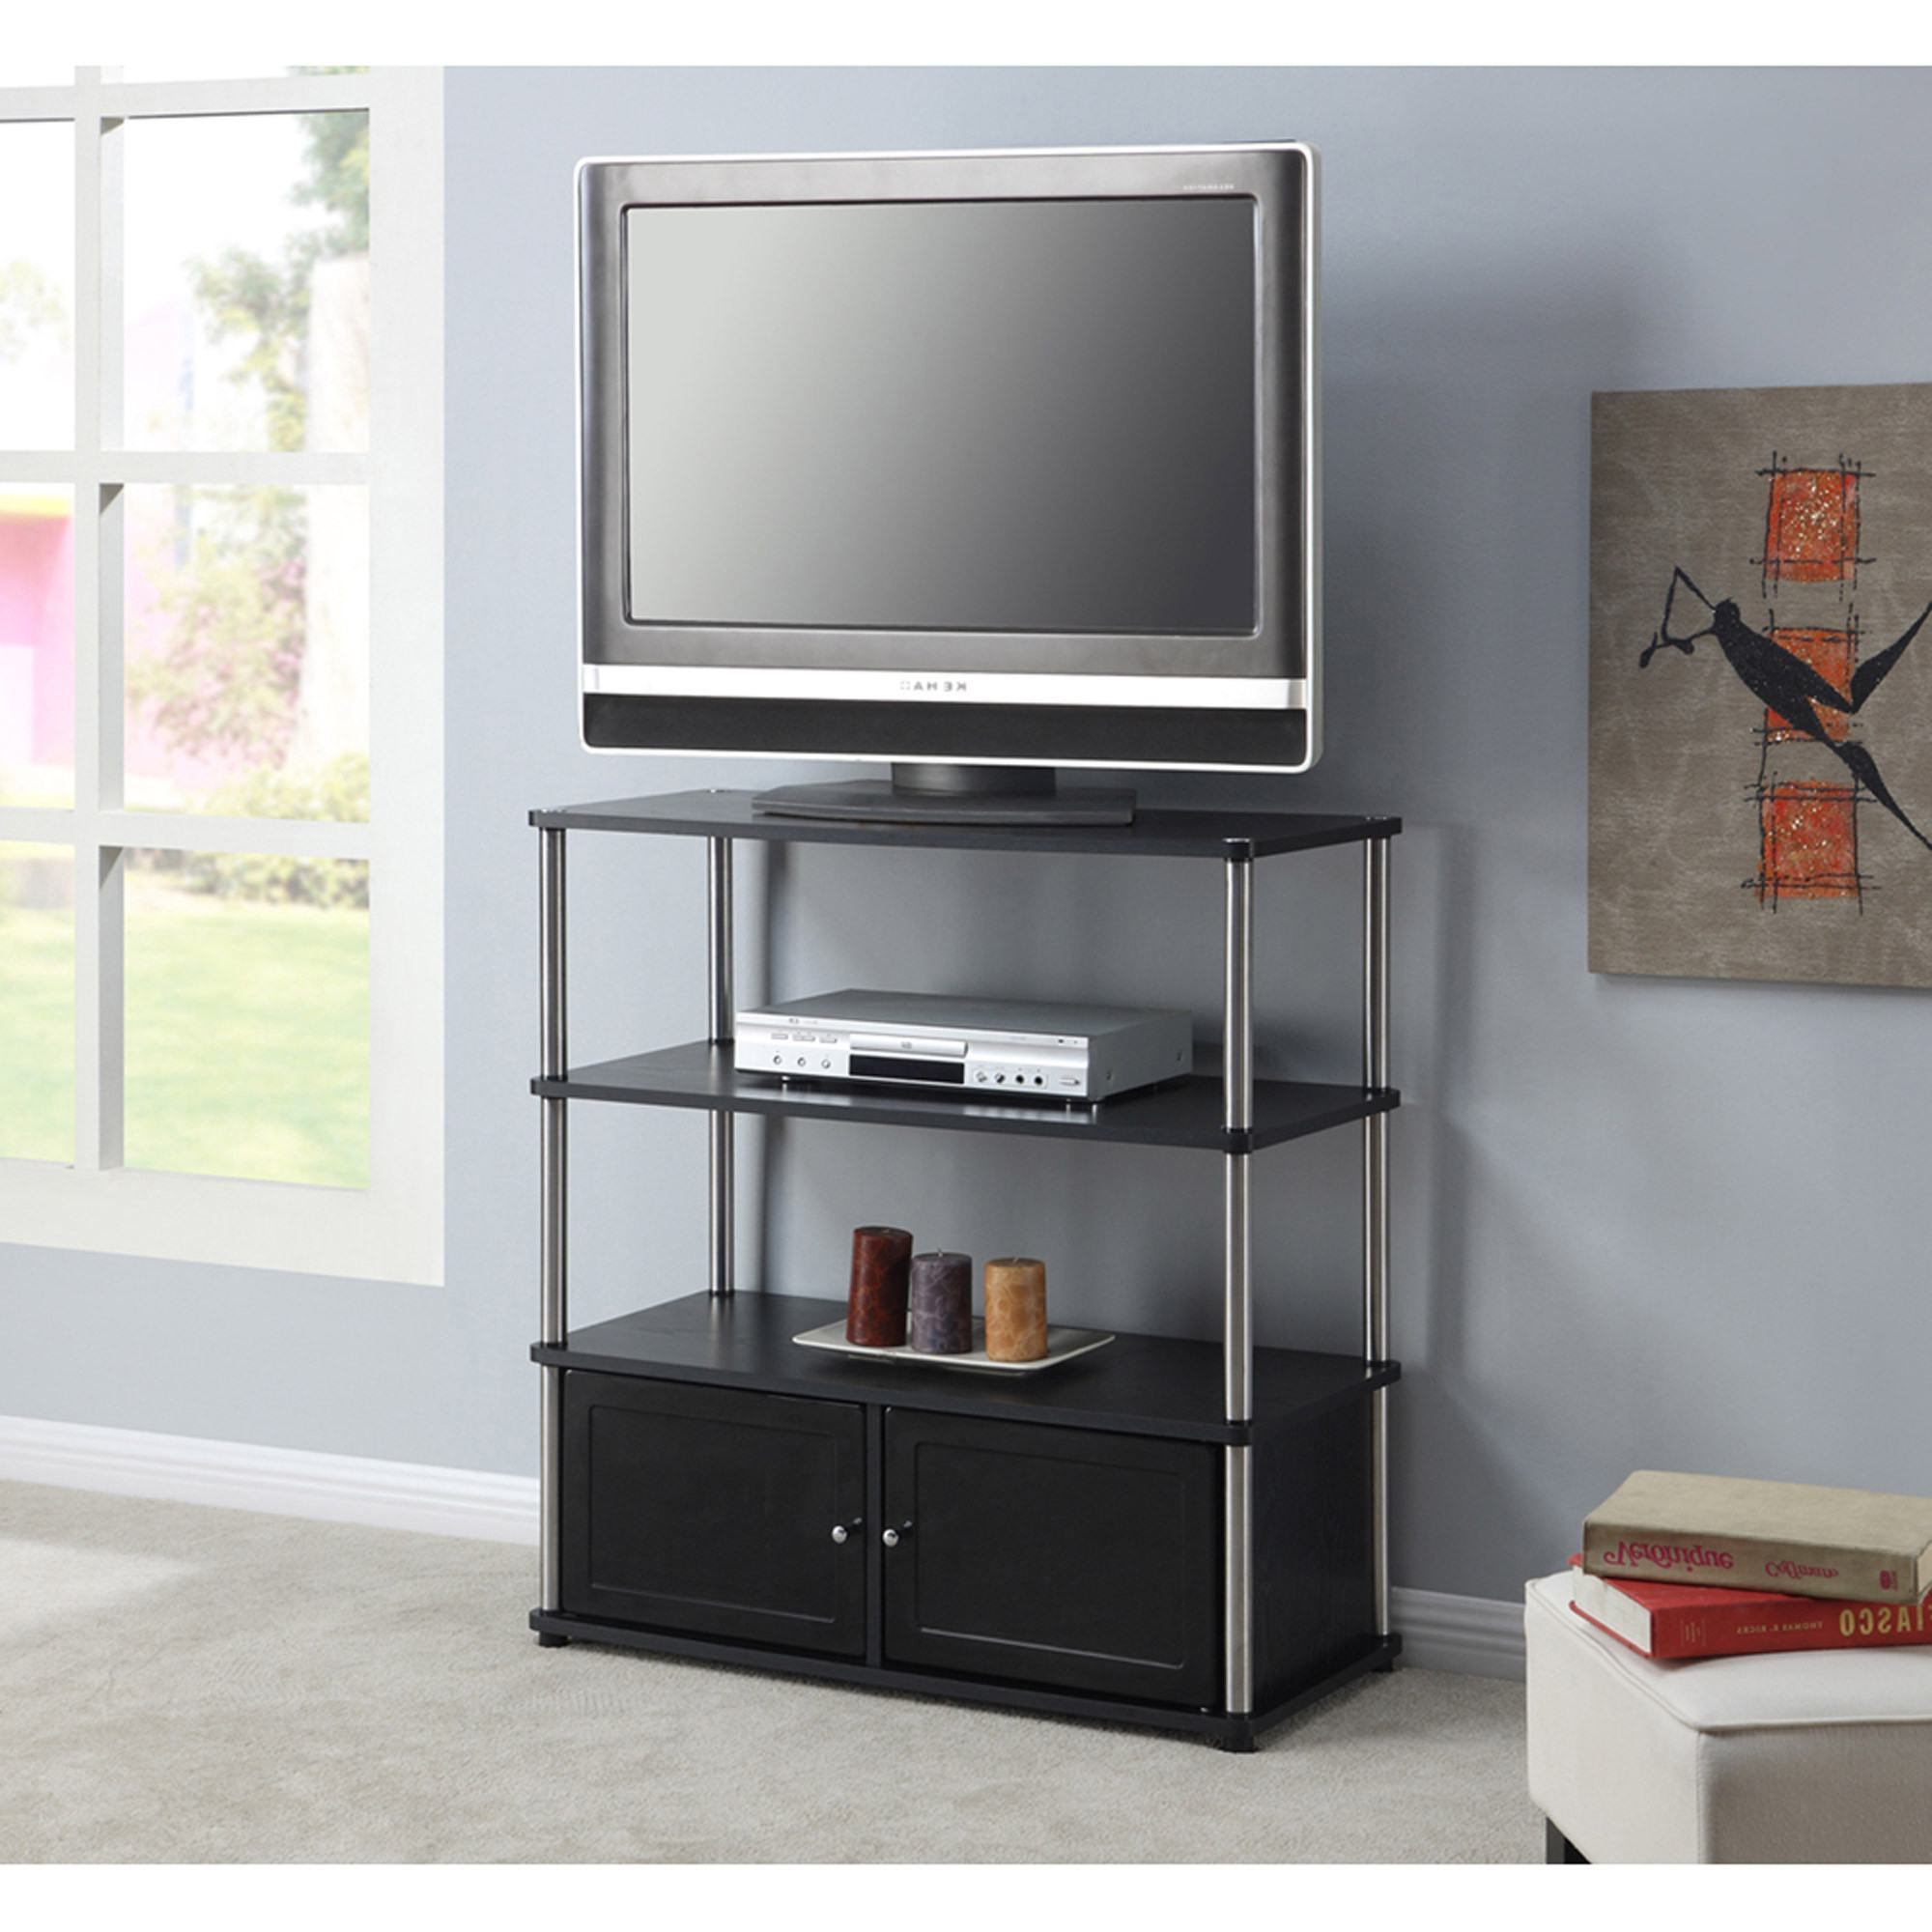 Stunning Chloe Narrow Tv Stand & Reviews Narrow Tv Stand Within Well Known Narrow Tv Stands For Flat Screens (Gallery 20 of 20)